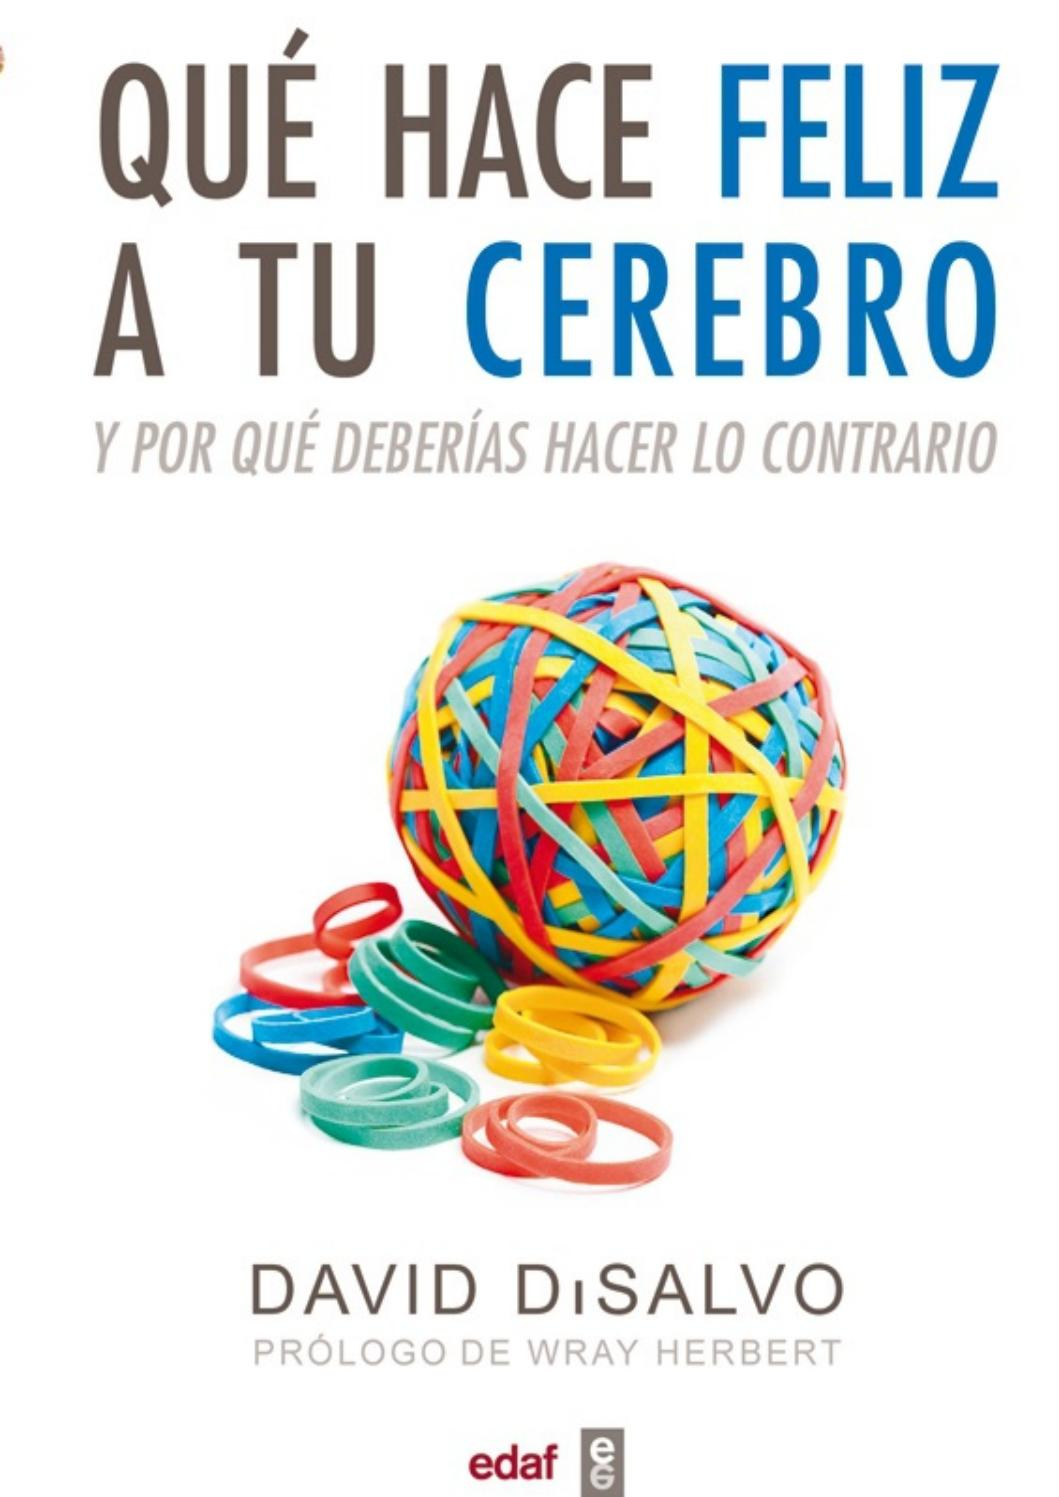 Que hace feliz a tu cerebro david disalvo by semipresencial5 - issuu